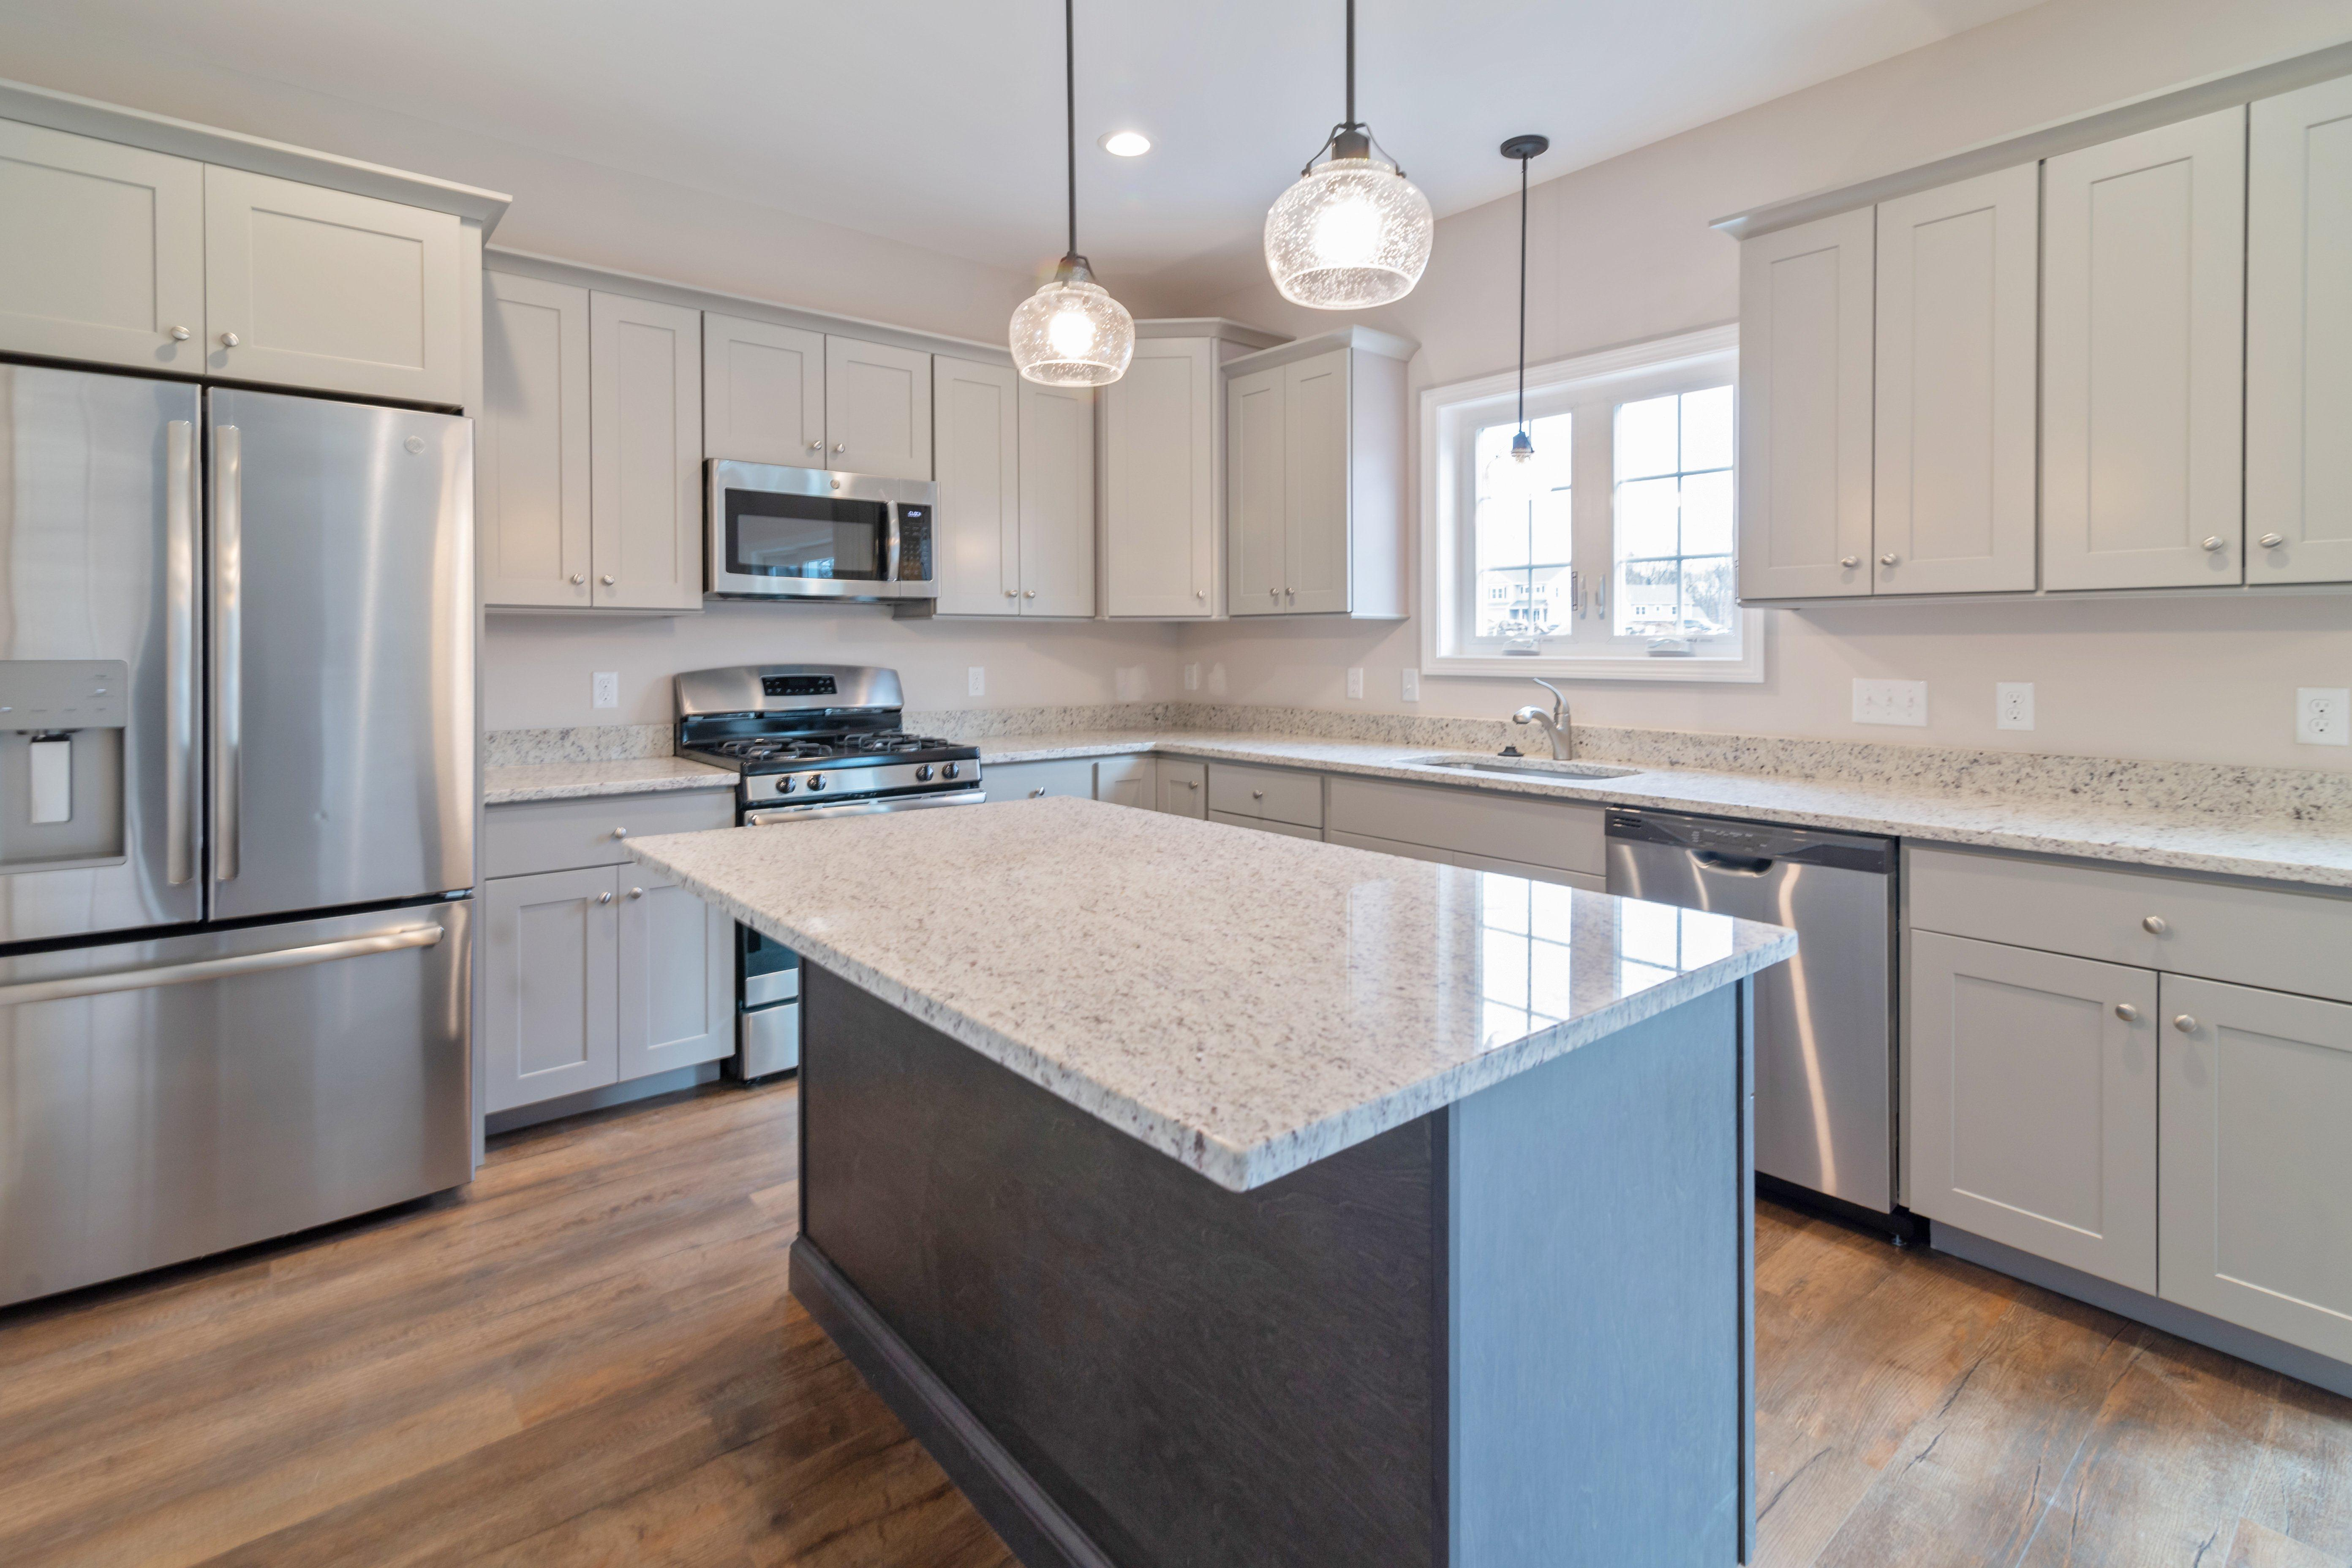 Kitchen featured in the Prescott By Calcagni Real Estate in Hartford, CT